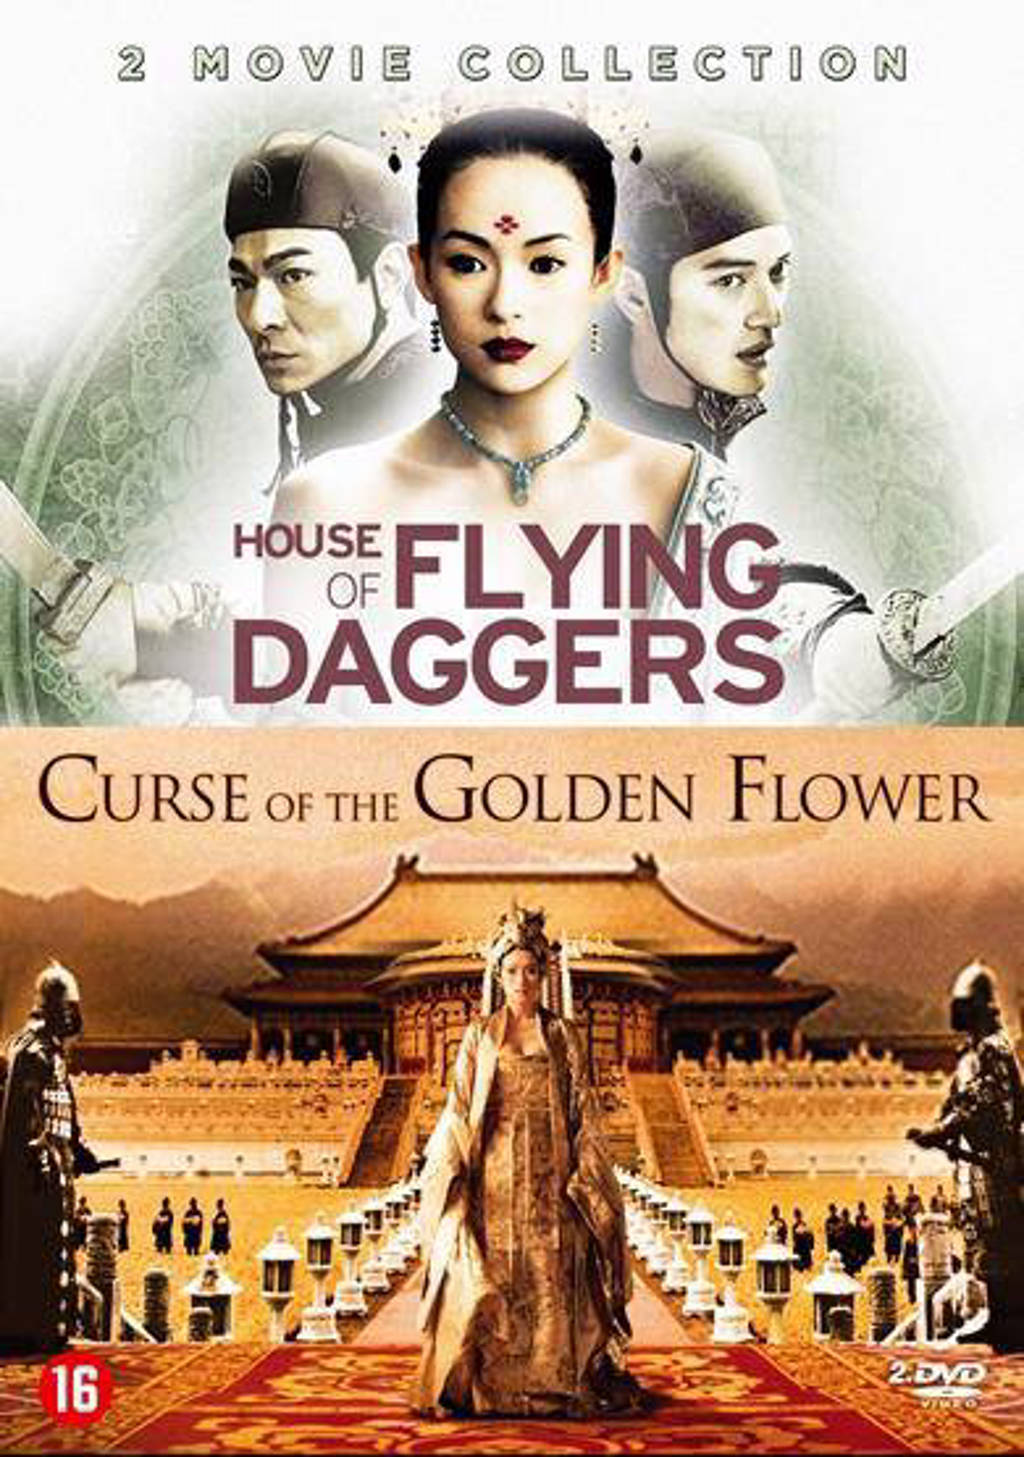 Curse of the golden flower/House of flying daggers (DVD)